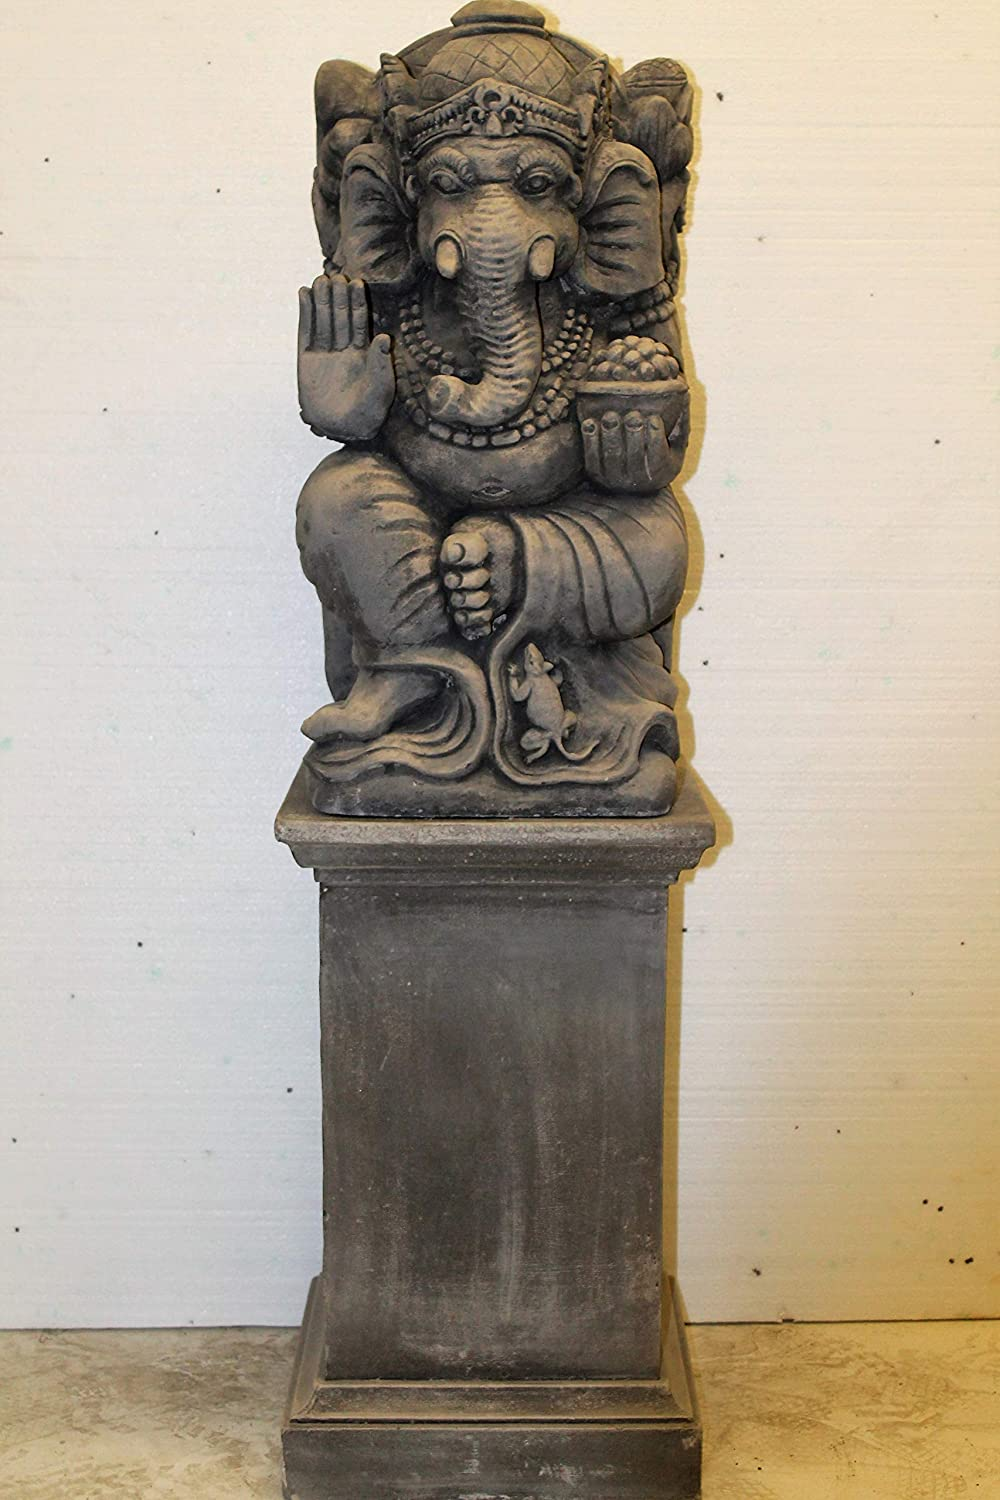 Ornate stone large ganesh on classic plinth garden ornament